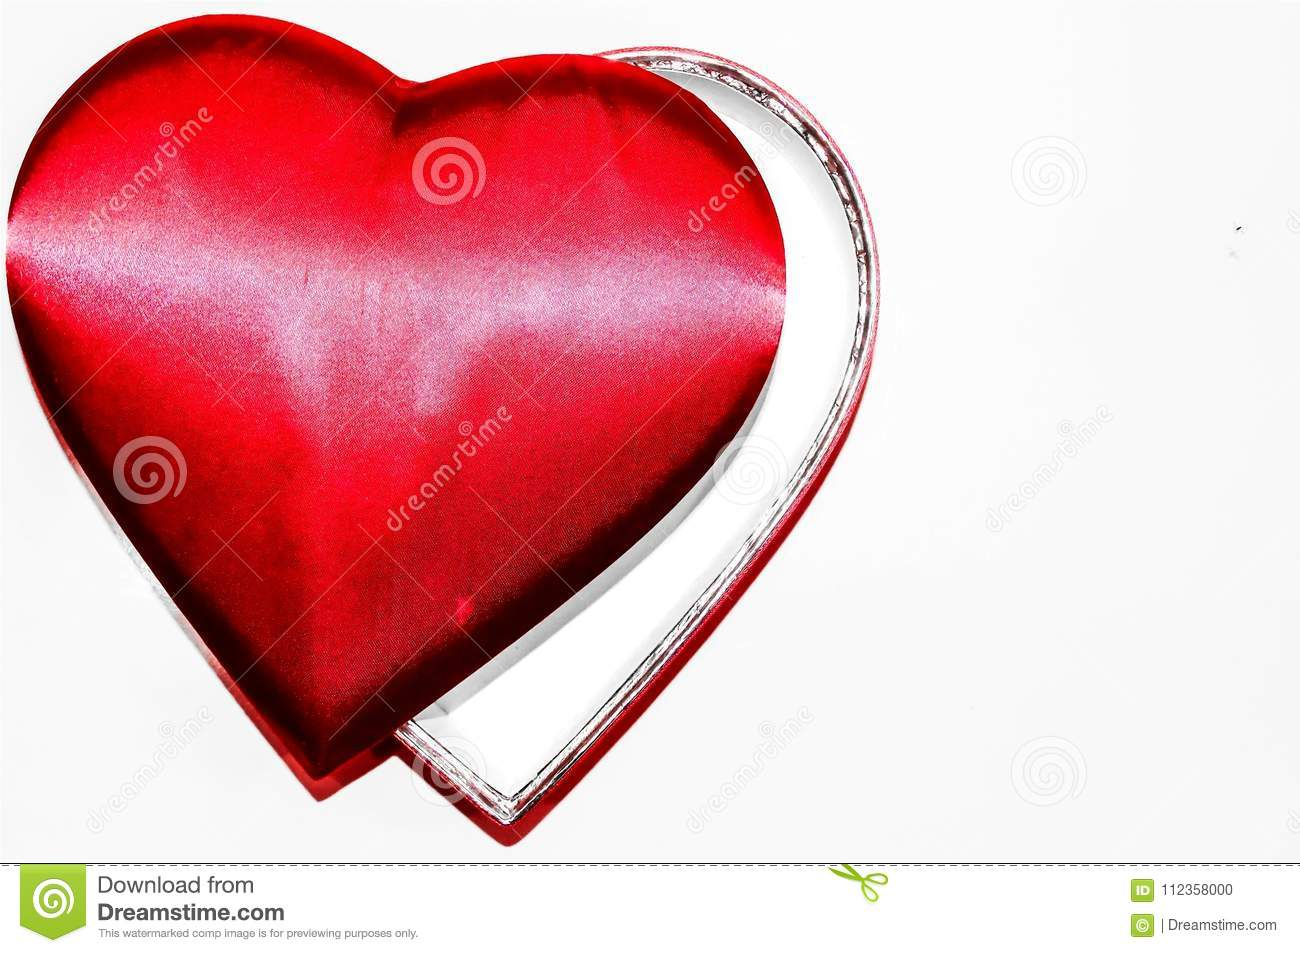 beautiful red heart on white background, love stock photo - image of